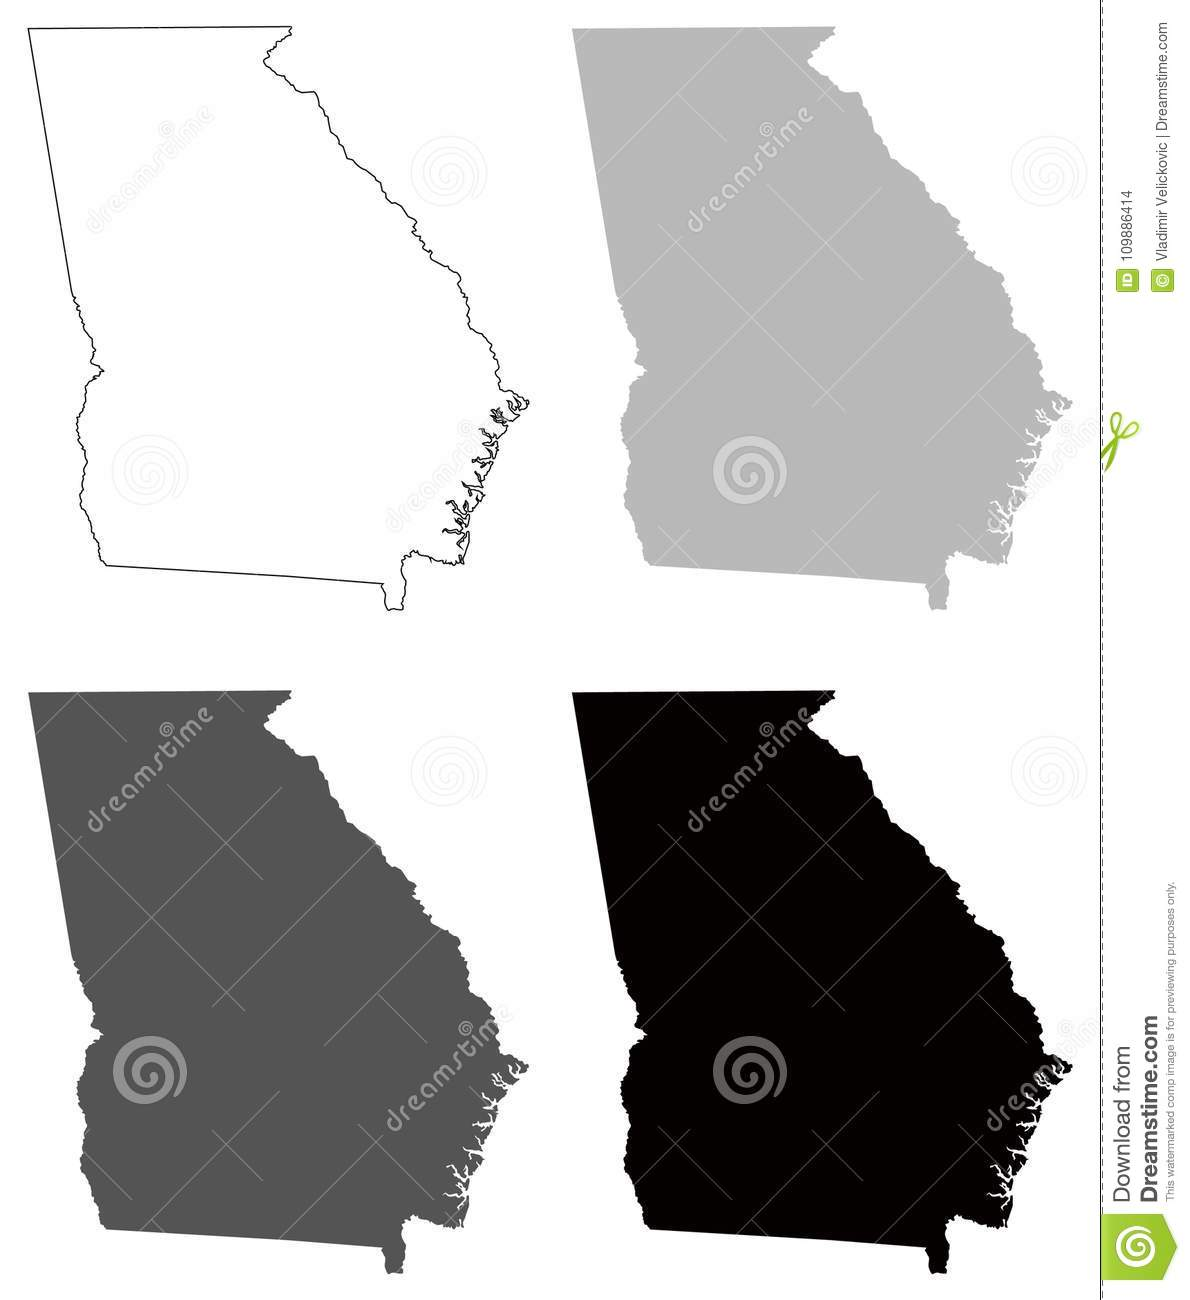 Georgia Map - State In The Southeastern United States Stock Vector on usa map maryland, usa map alaska, usa map south carolina, usa map arizona, usa map kentucky, usa map mississippi, usa map minnesota, usa map ohio, usa map colorado, usa map virginia, usa map north carolina, usa map pennsylvania, usa map alabama, usa map florida, usa map montana, usa map idaho, usa map california, usa map oklahoma, usa map maine, usa map atlanta,